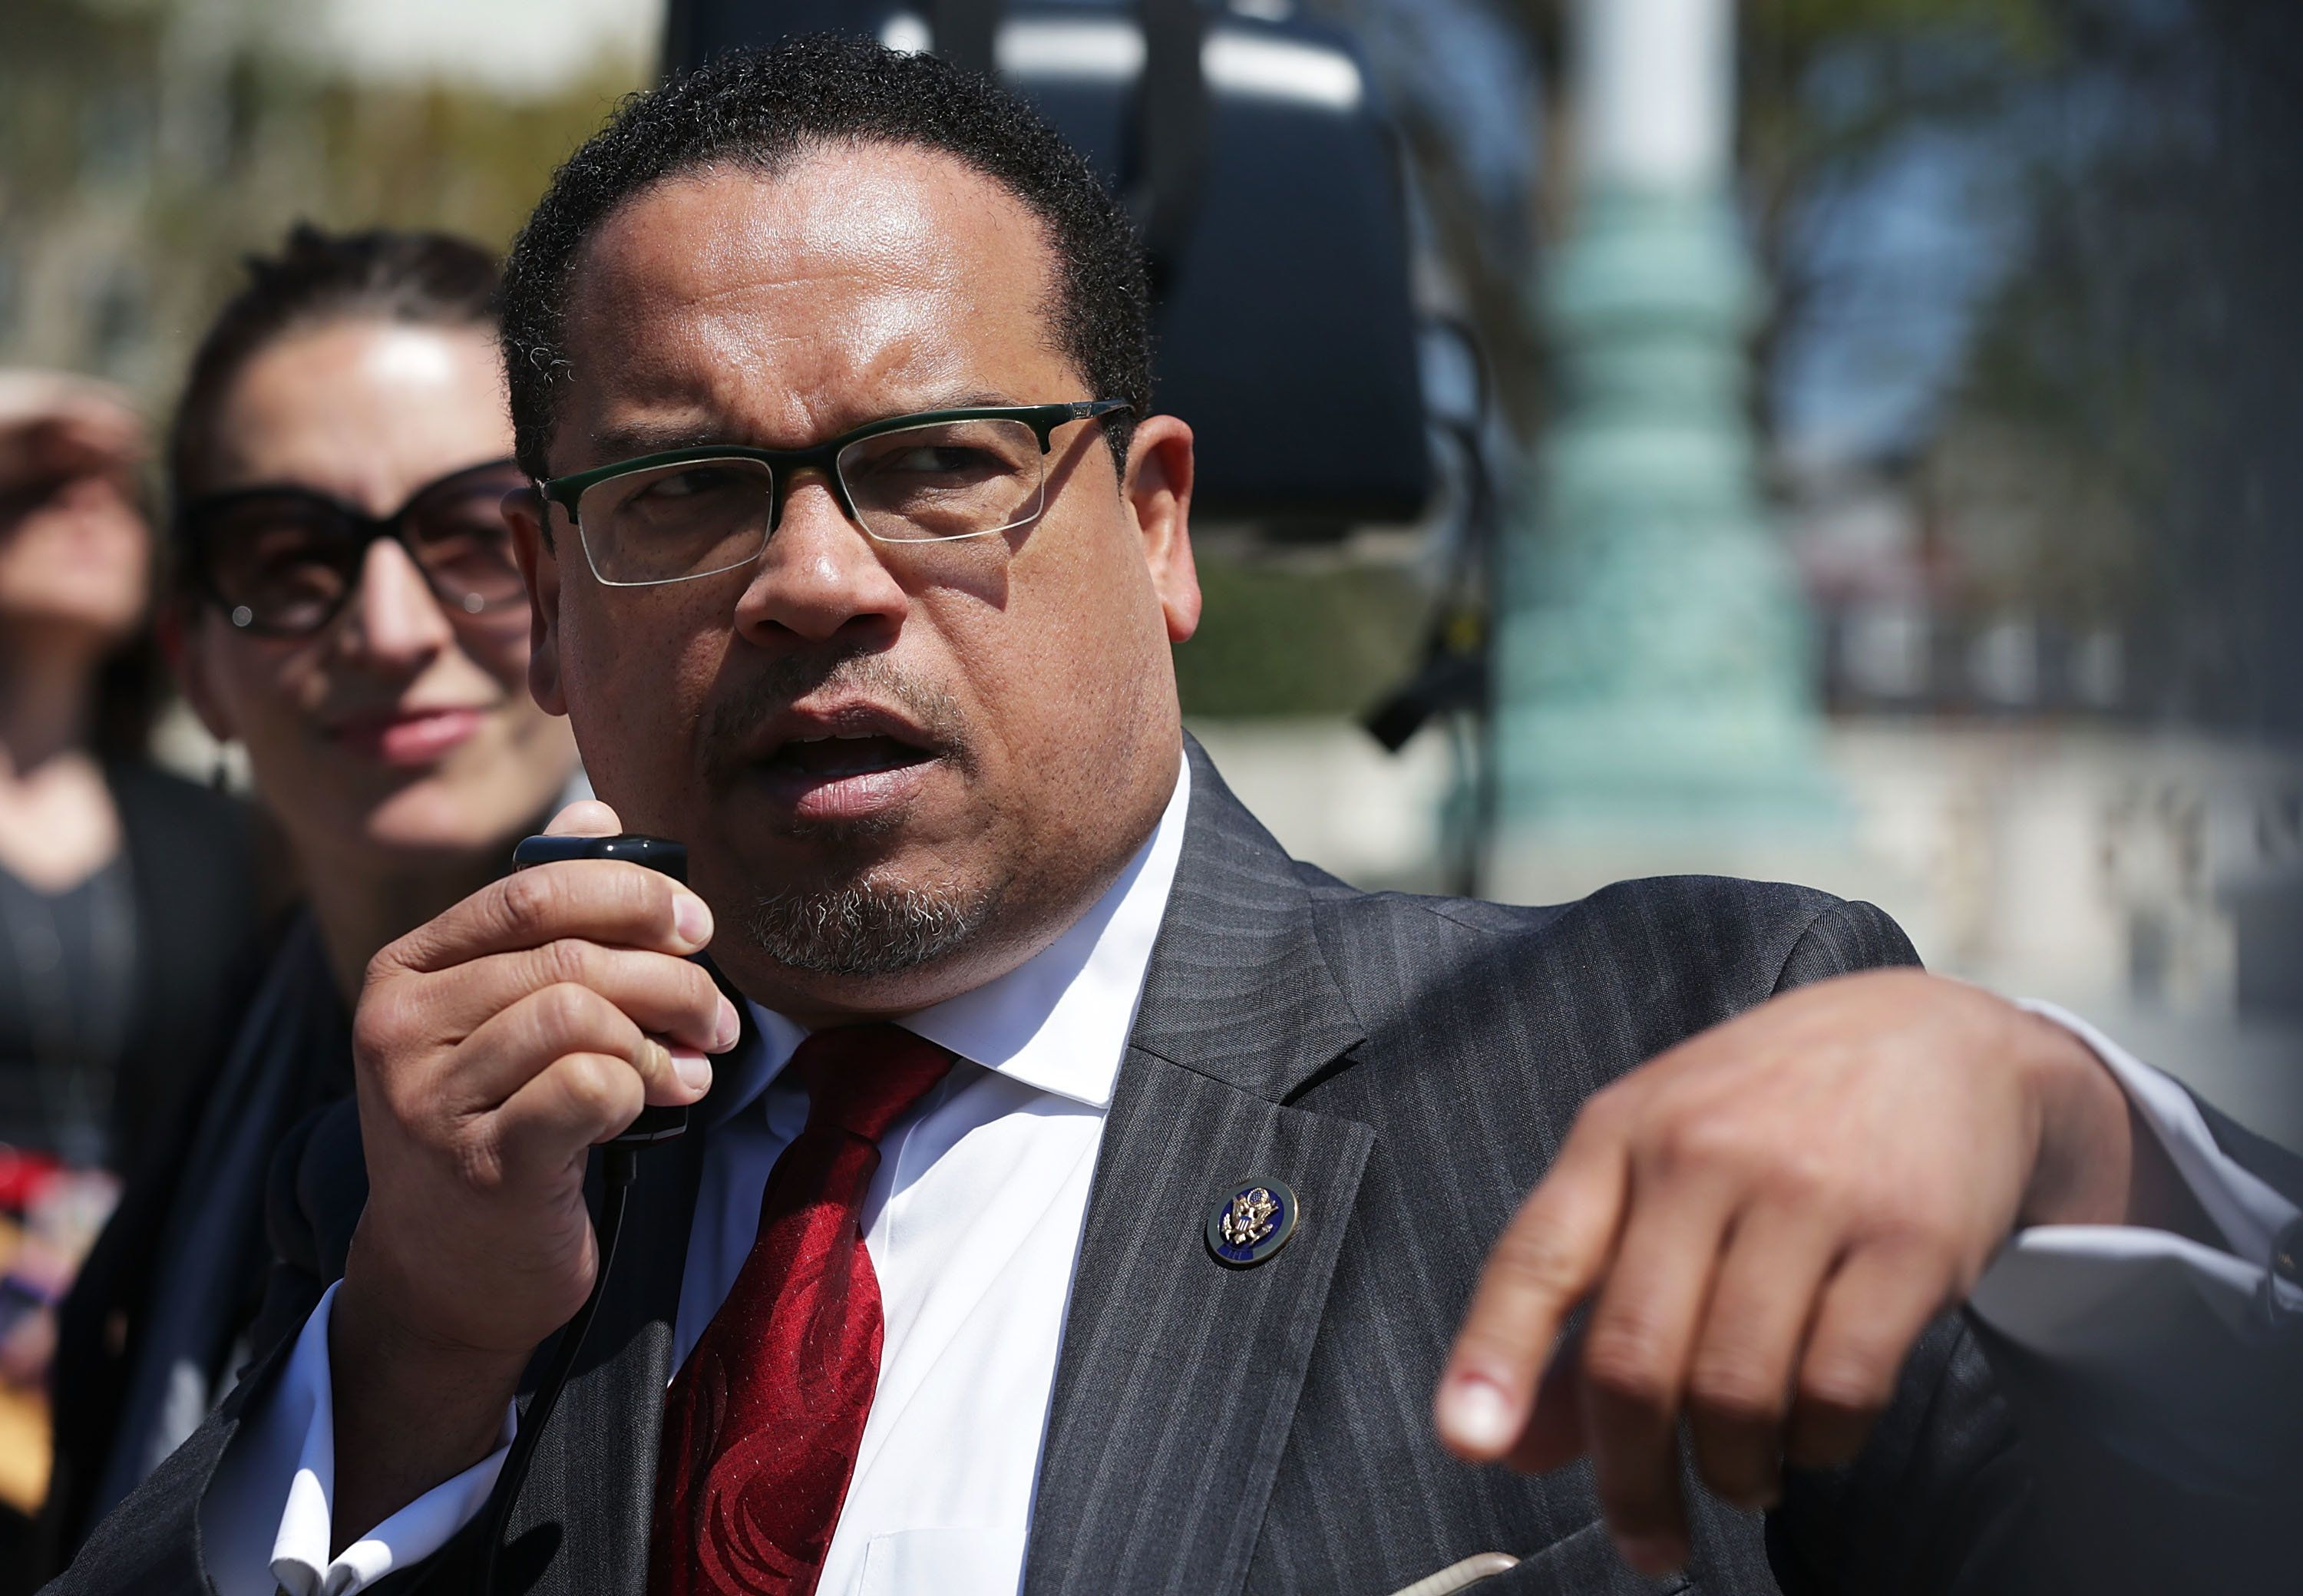 WASHINGTON, UNITED STATES - APRIL 13:  U.S. Rep. Keith Ellison (D-MN) (R) speaks during a news conference in front of the Supreme Court April 13, 2016 in Washington, DC. The Congressional Progressive Caucus held a news conference with federal workers and other groups 'to call on Senate Republicans to do their job and hold a hearing on the Supreme Court nomination of Merrick Garland.'  (Photo by Alex Wong/Getty Images)